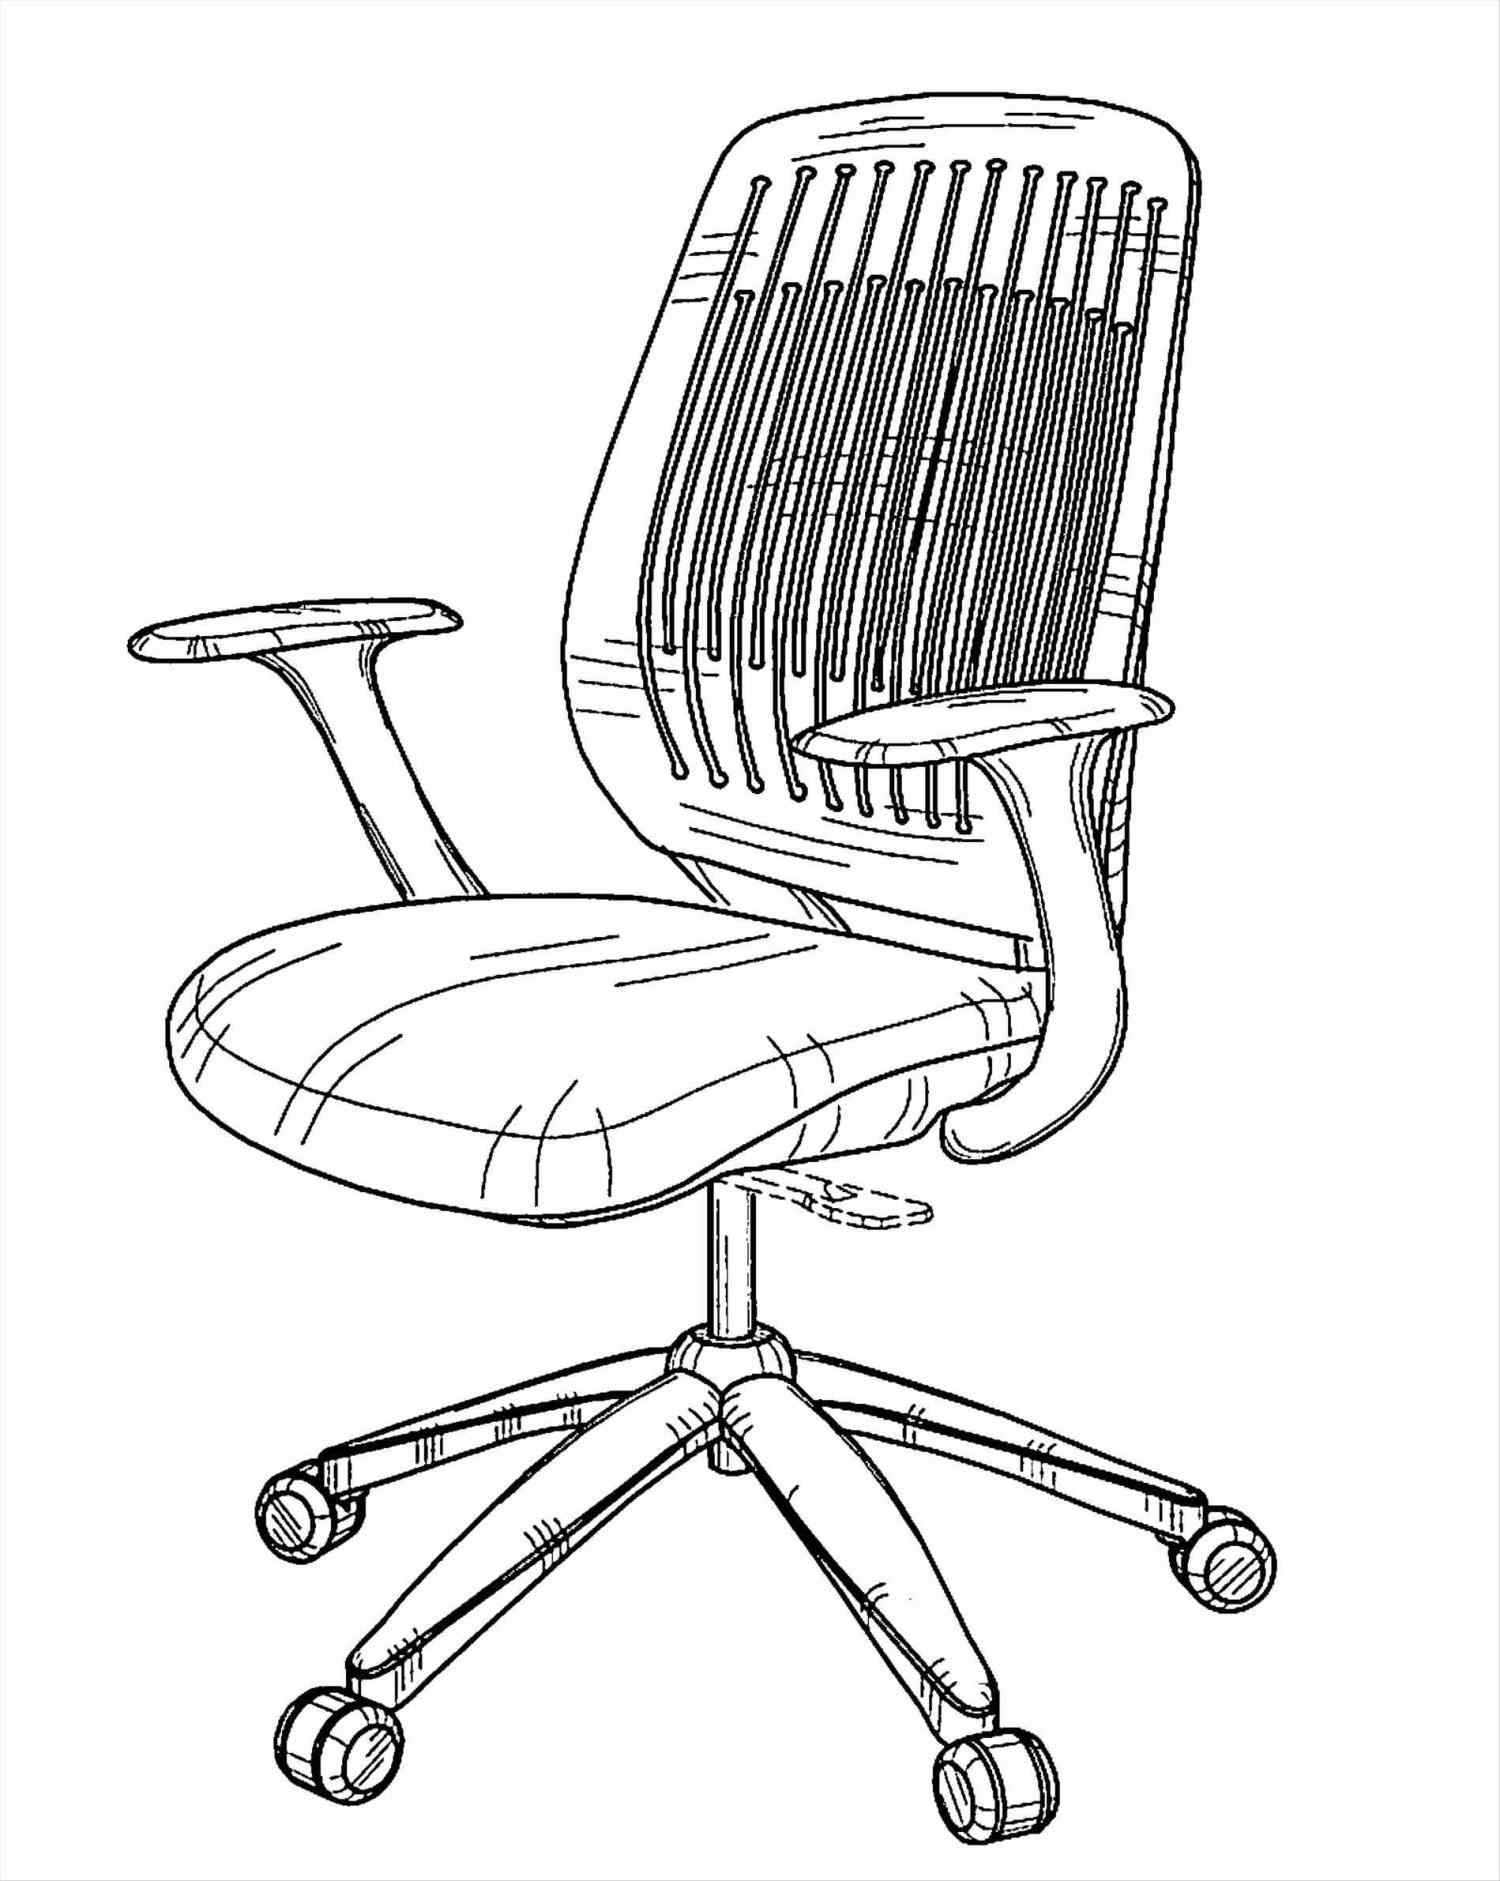 chair design patent dorm chairs kohls office drawing at getdrawings free for